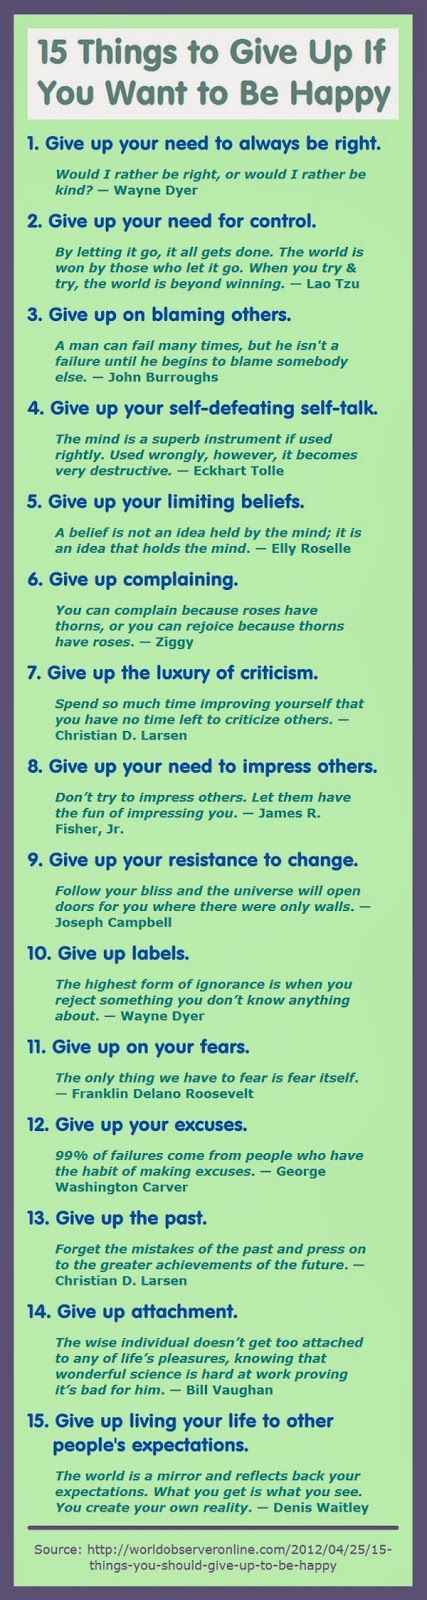 Things to Give Up for Happiness